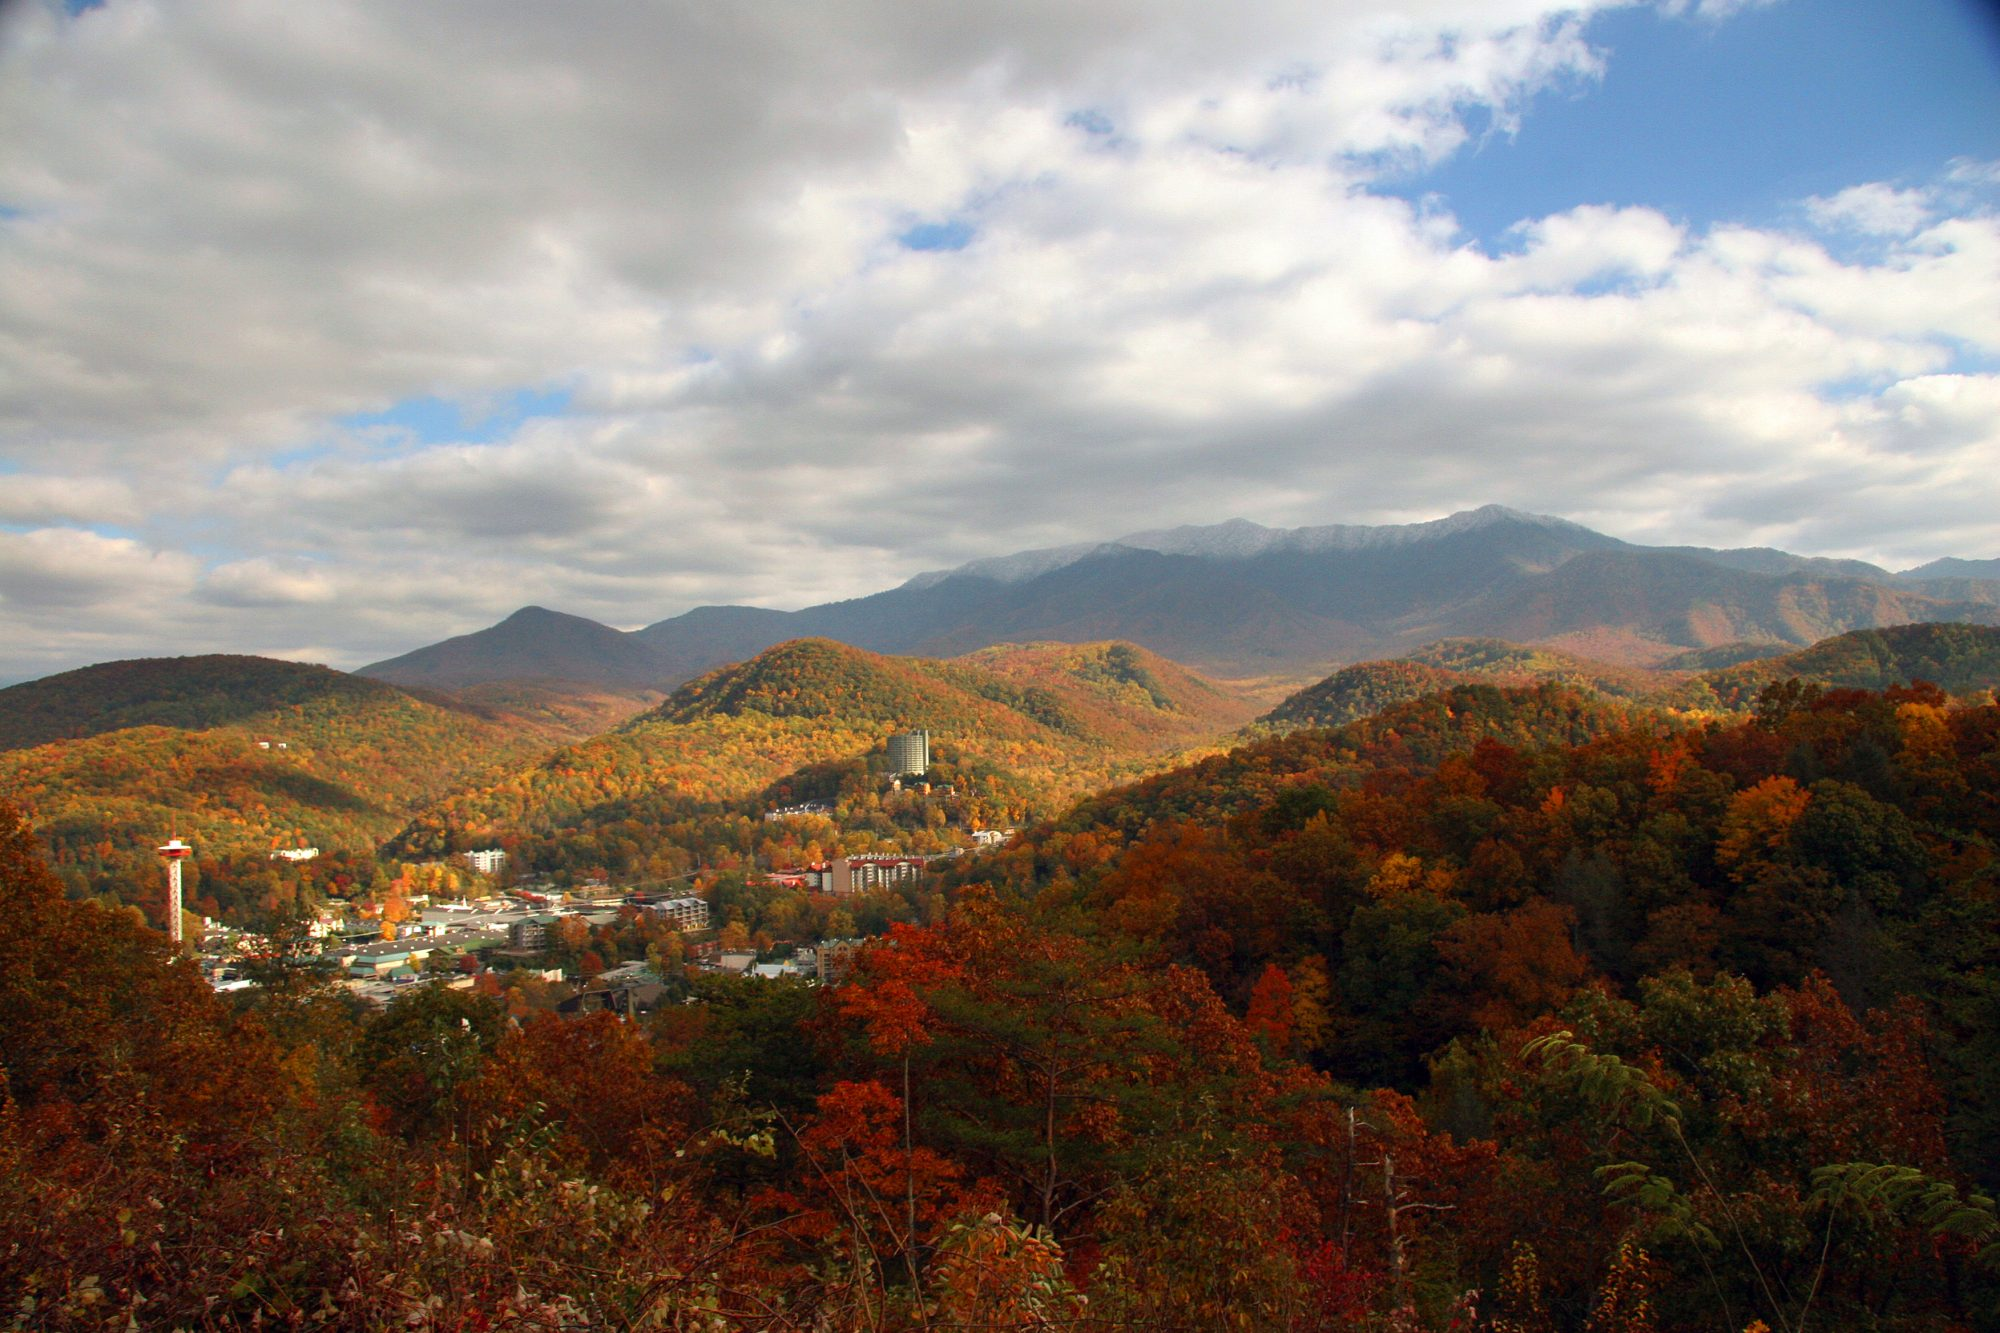 7. Gatlinburg, Tennessee